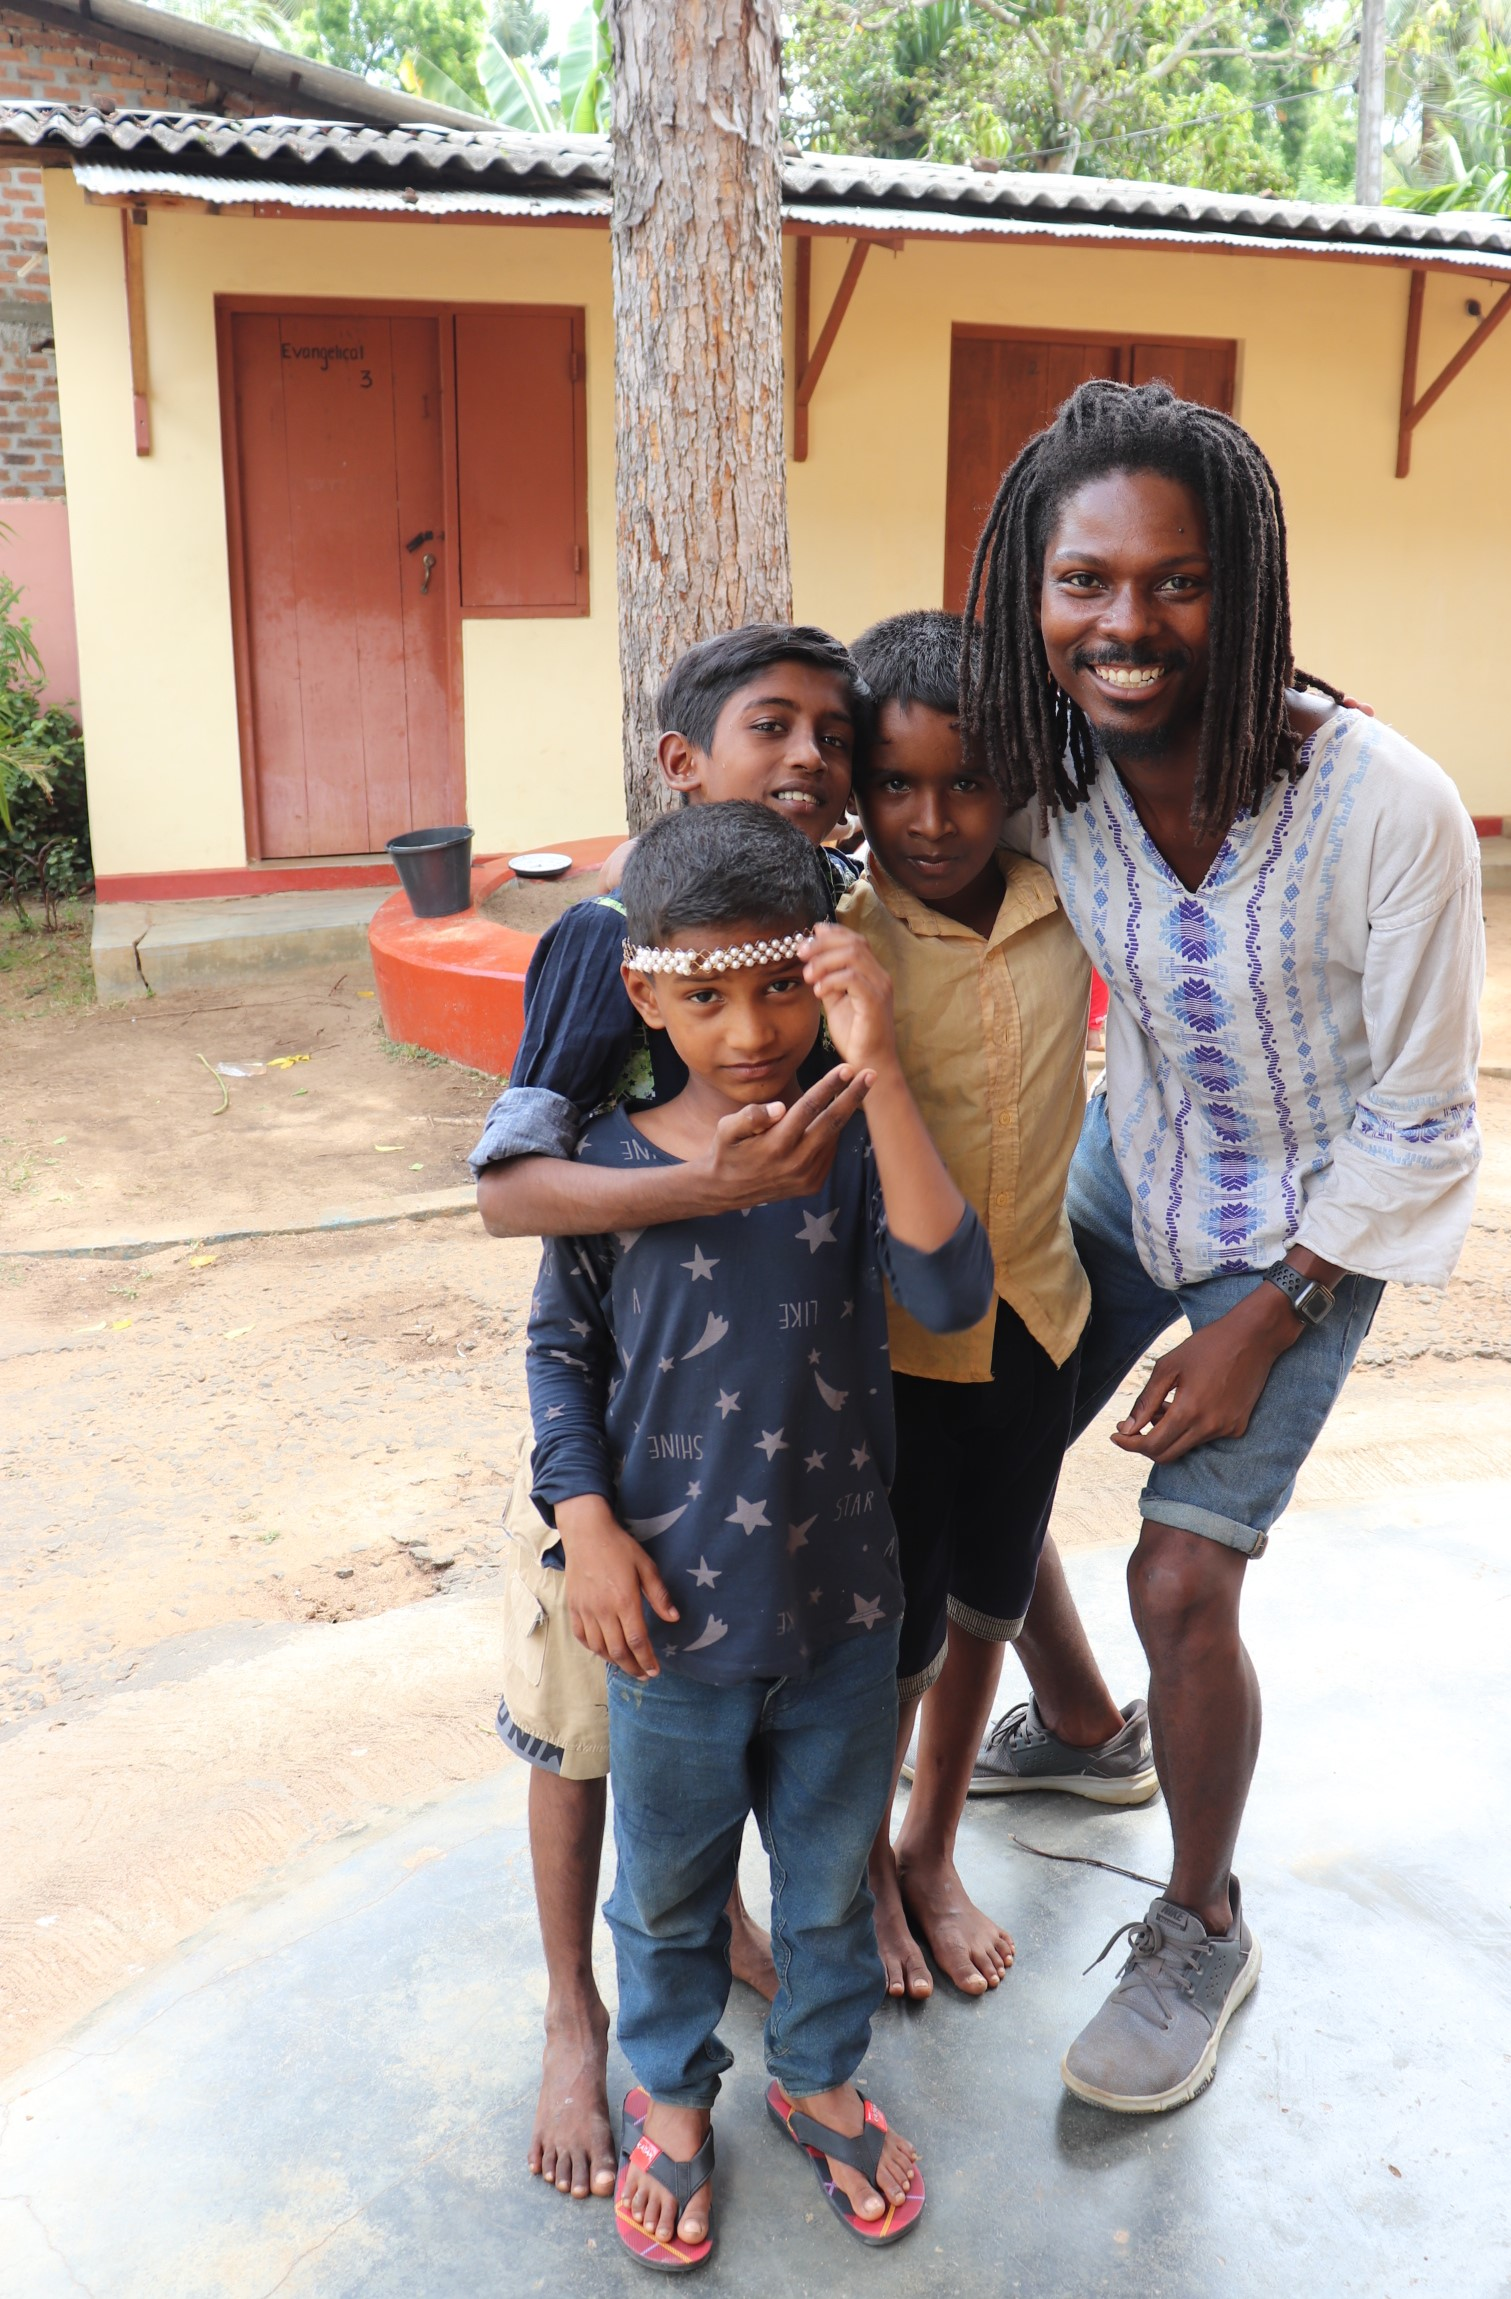 D'Angelo Smith with children in Sri Lanka, 2019